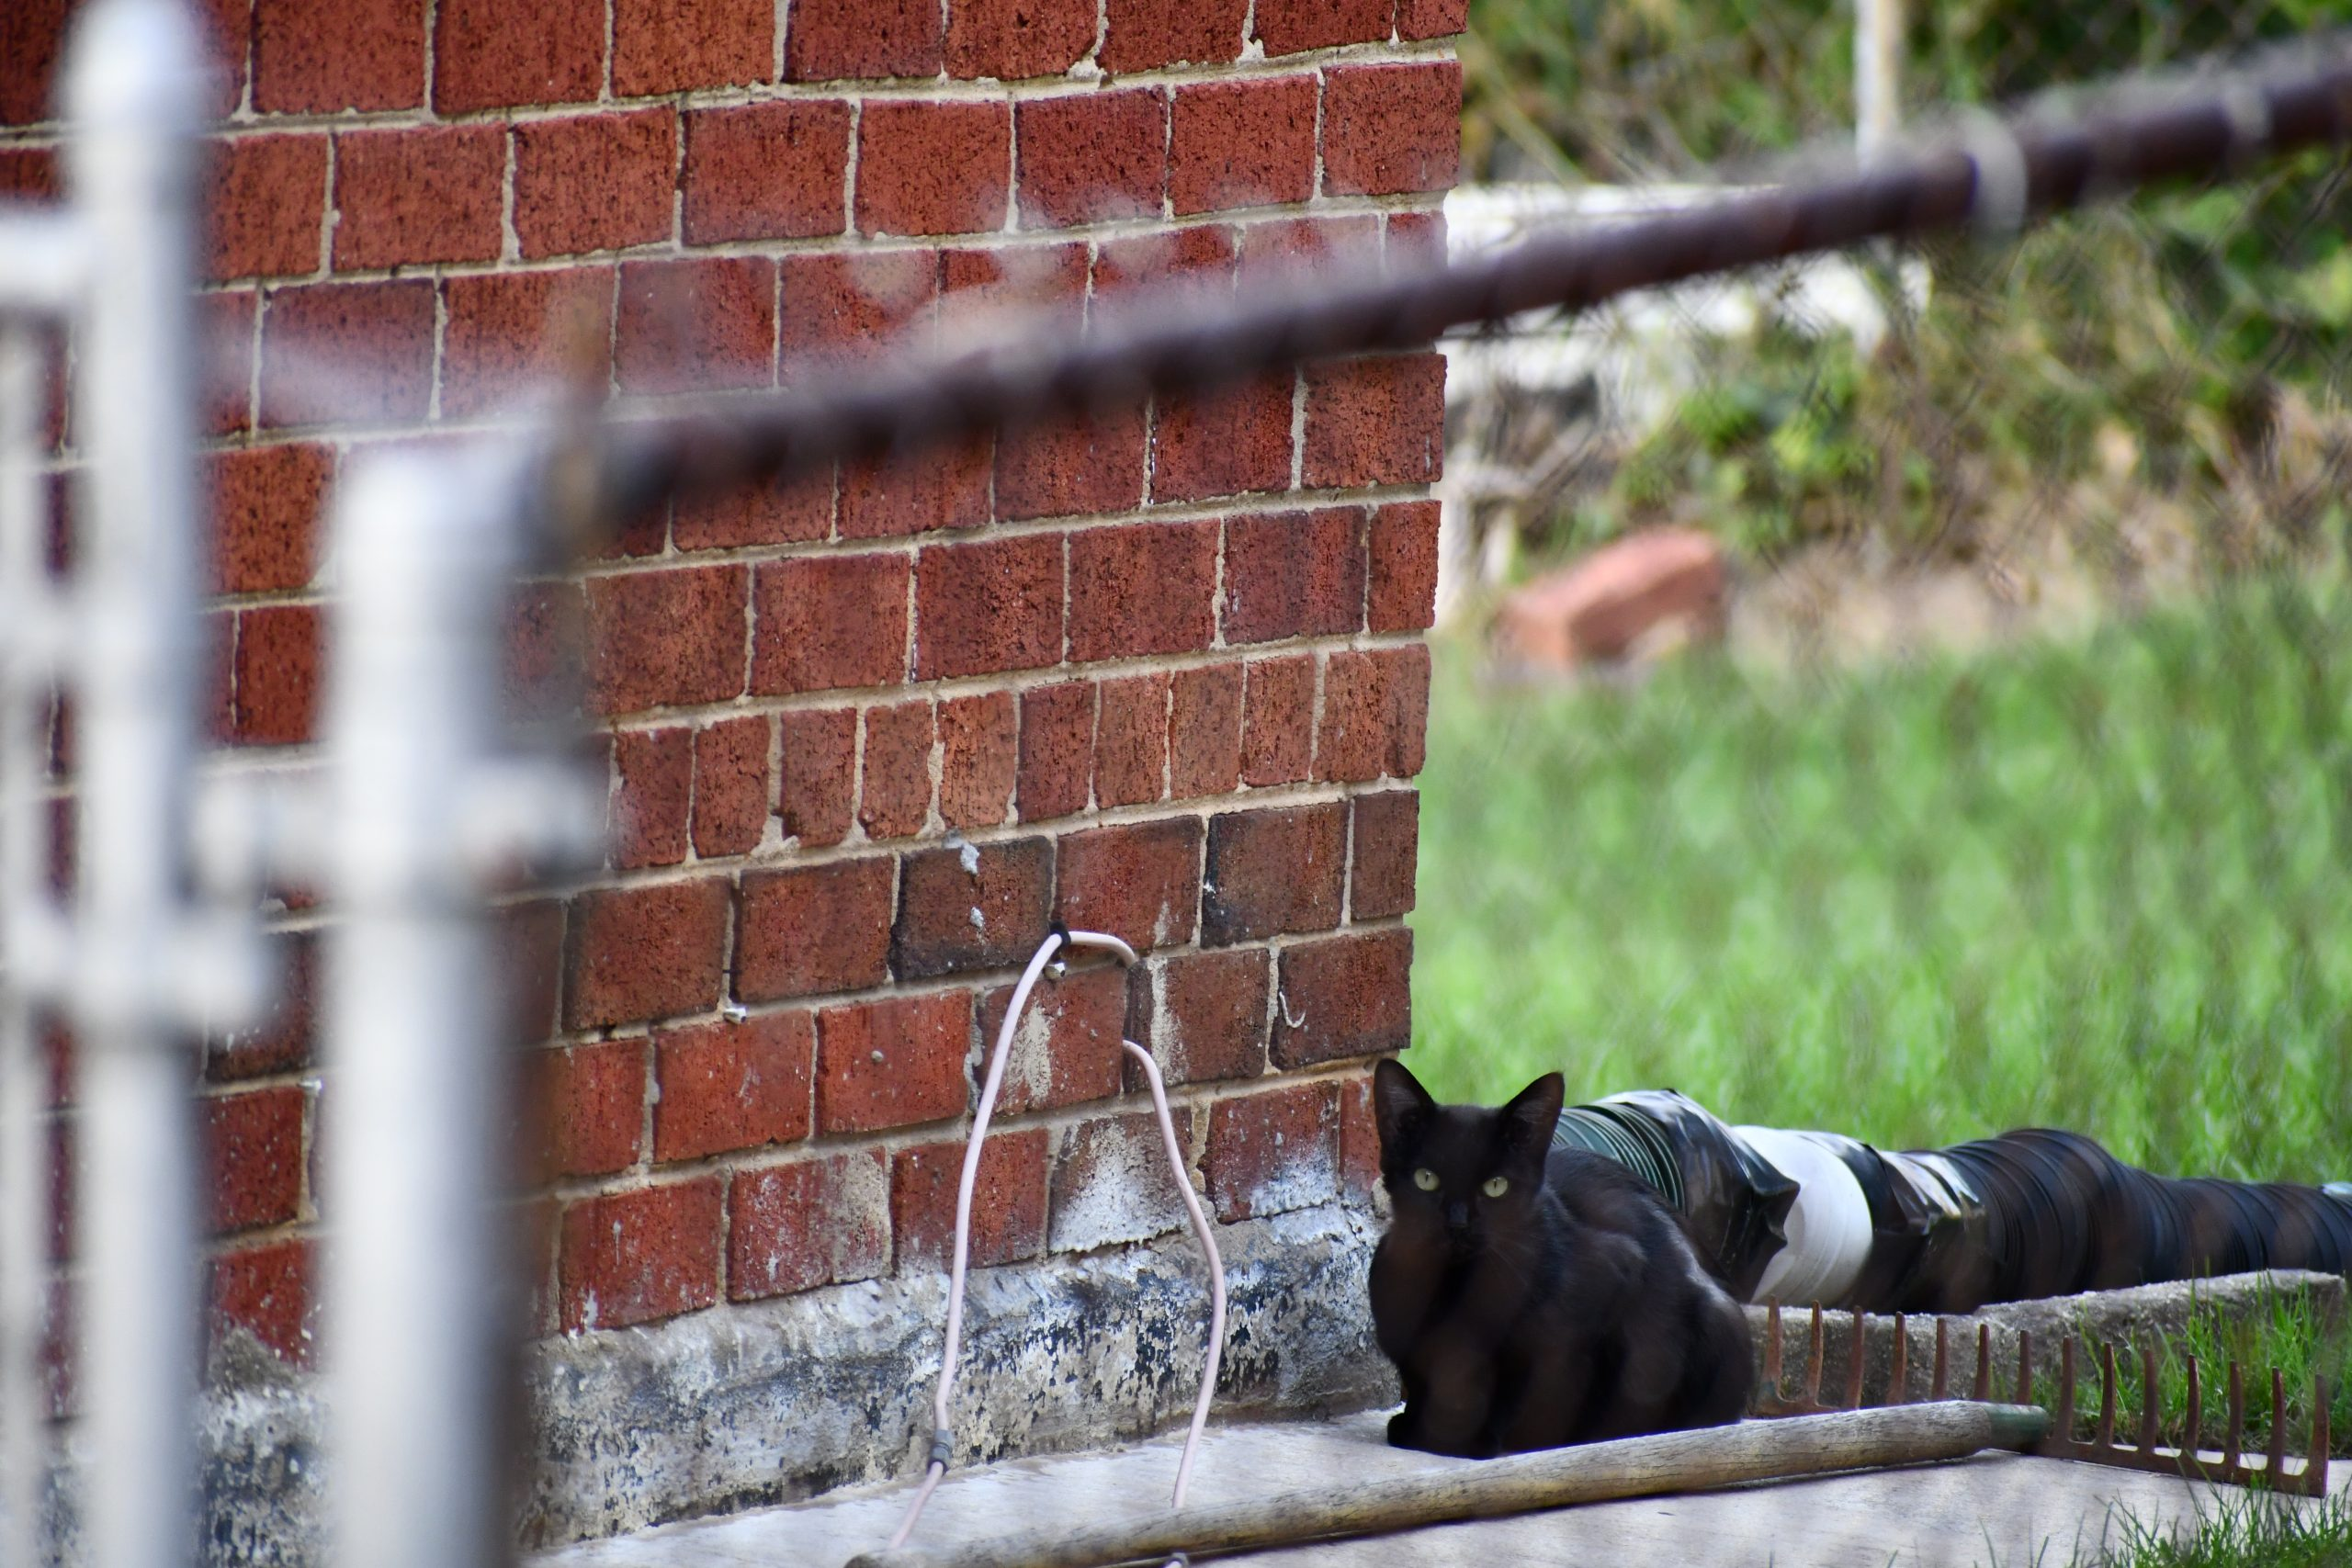 A young and pregnant black cat lies next to a brick house behind a silver chain linked fence.